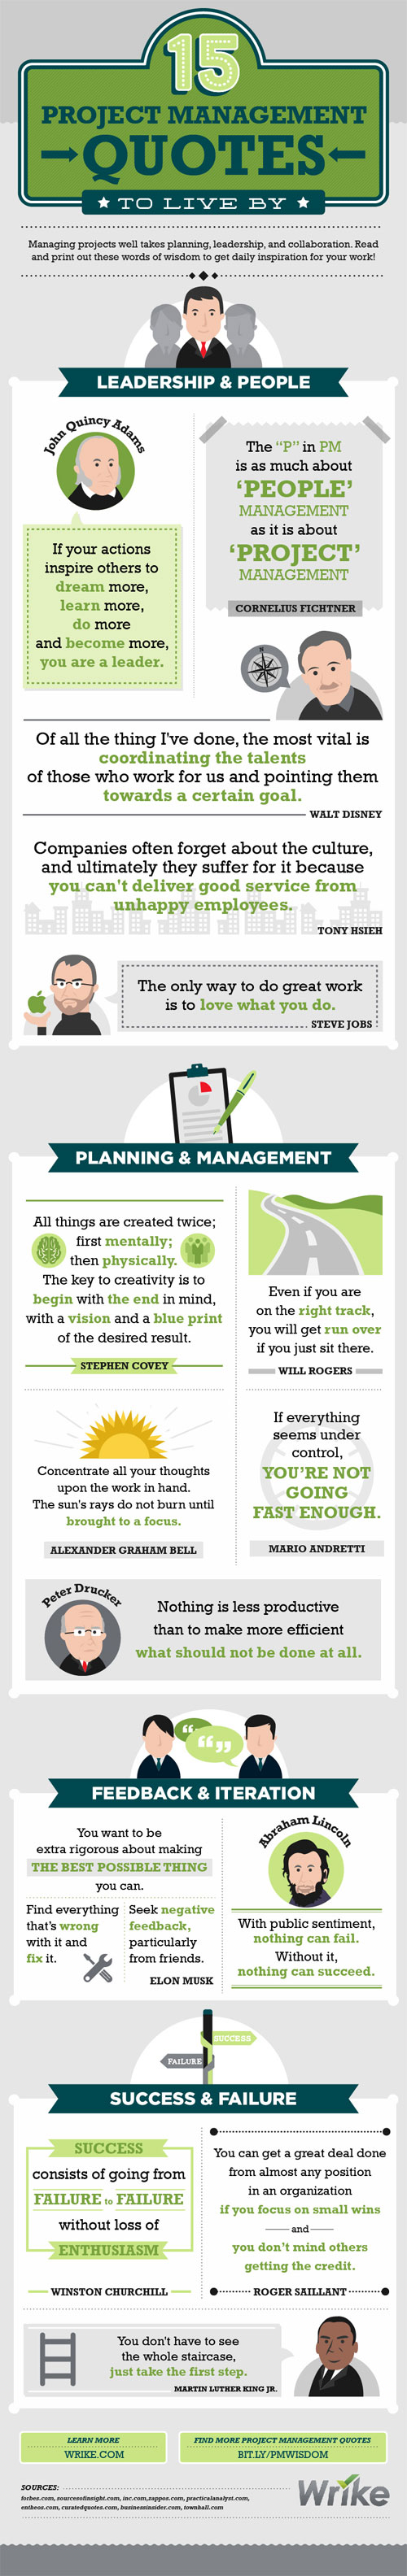 top-15-project-management-quotes-trendy-gadget